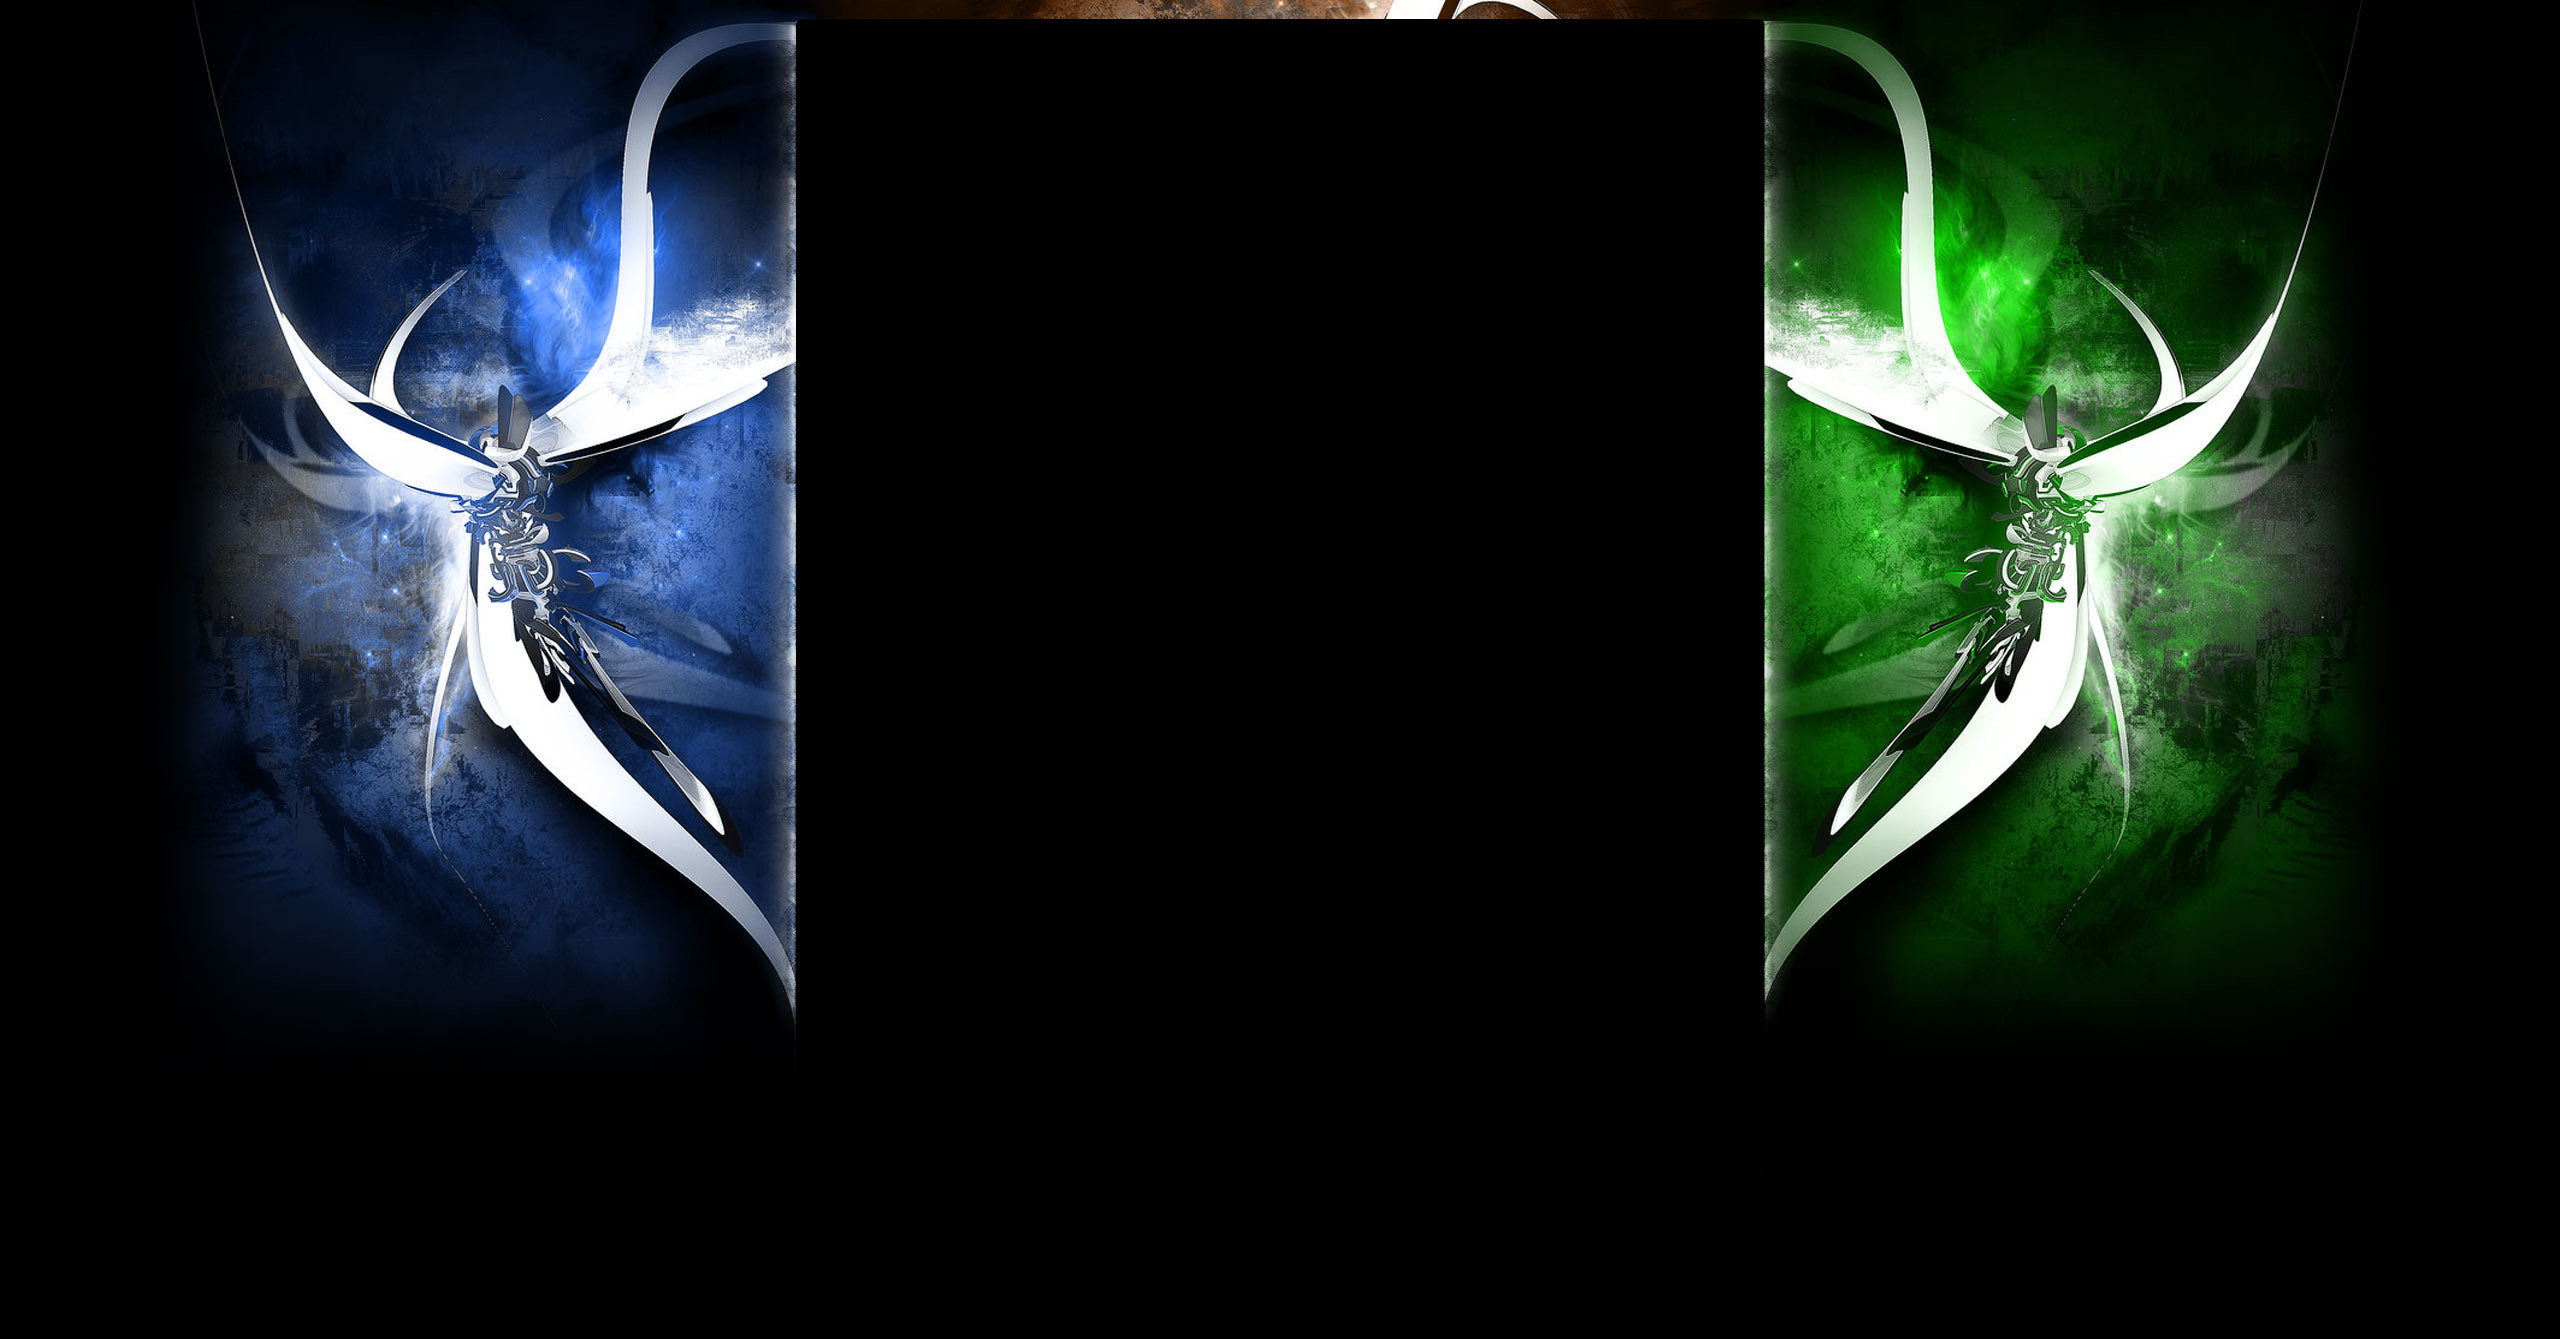 Cool Gaming Backgrounds For Youtube Abstract channel art for youtube .